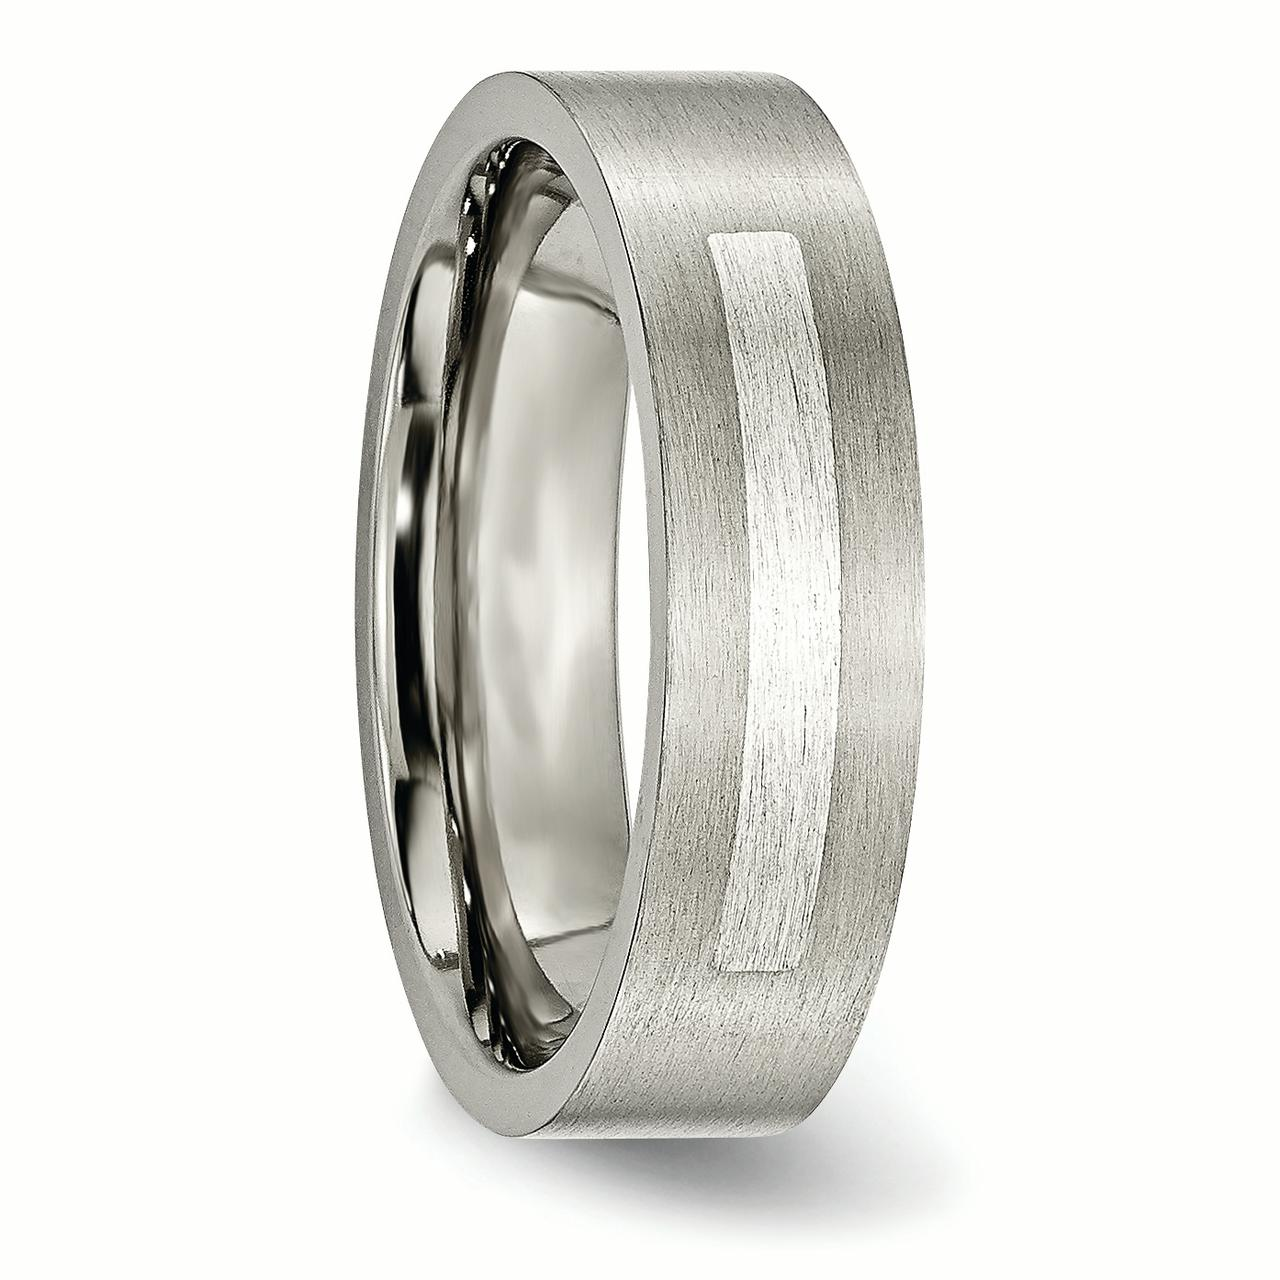 Titanium Flat 6mm 925 Sterling Silver Inlay Brushed Wedding Ring Band Size 12.50 Precious Metal Fine Jewelry Gifts For Women For Her - image 5 of 7